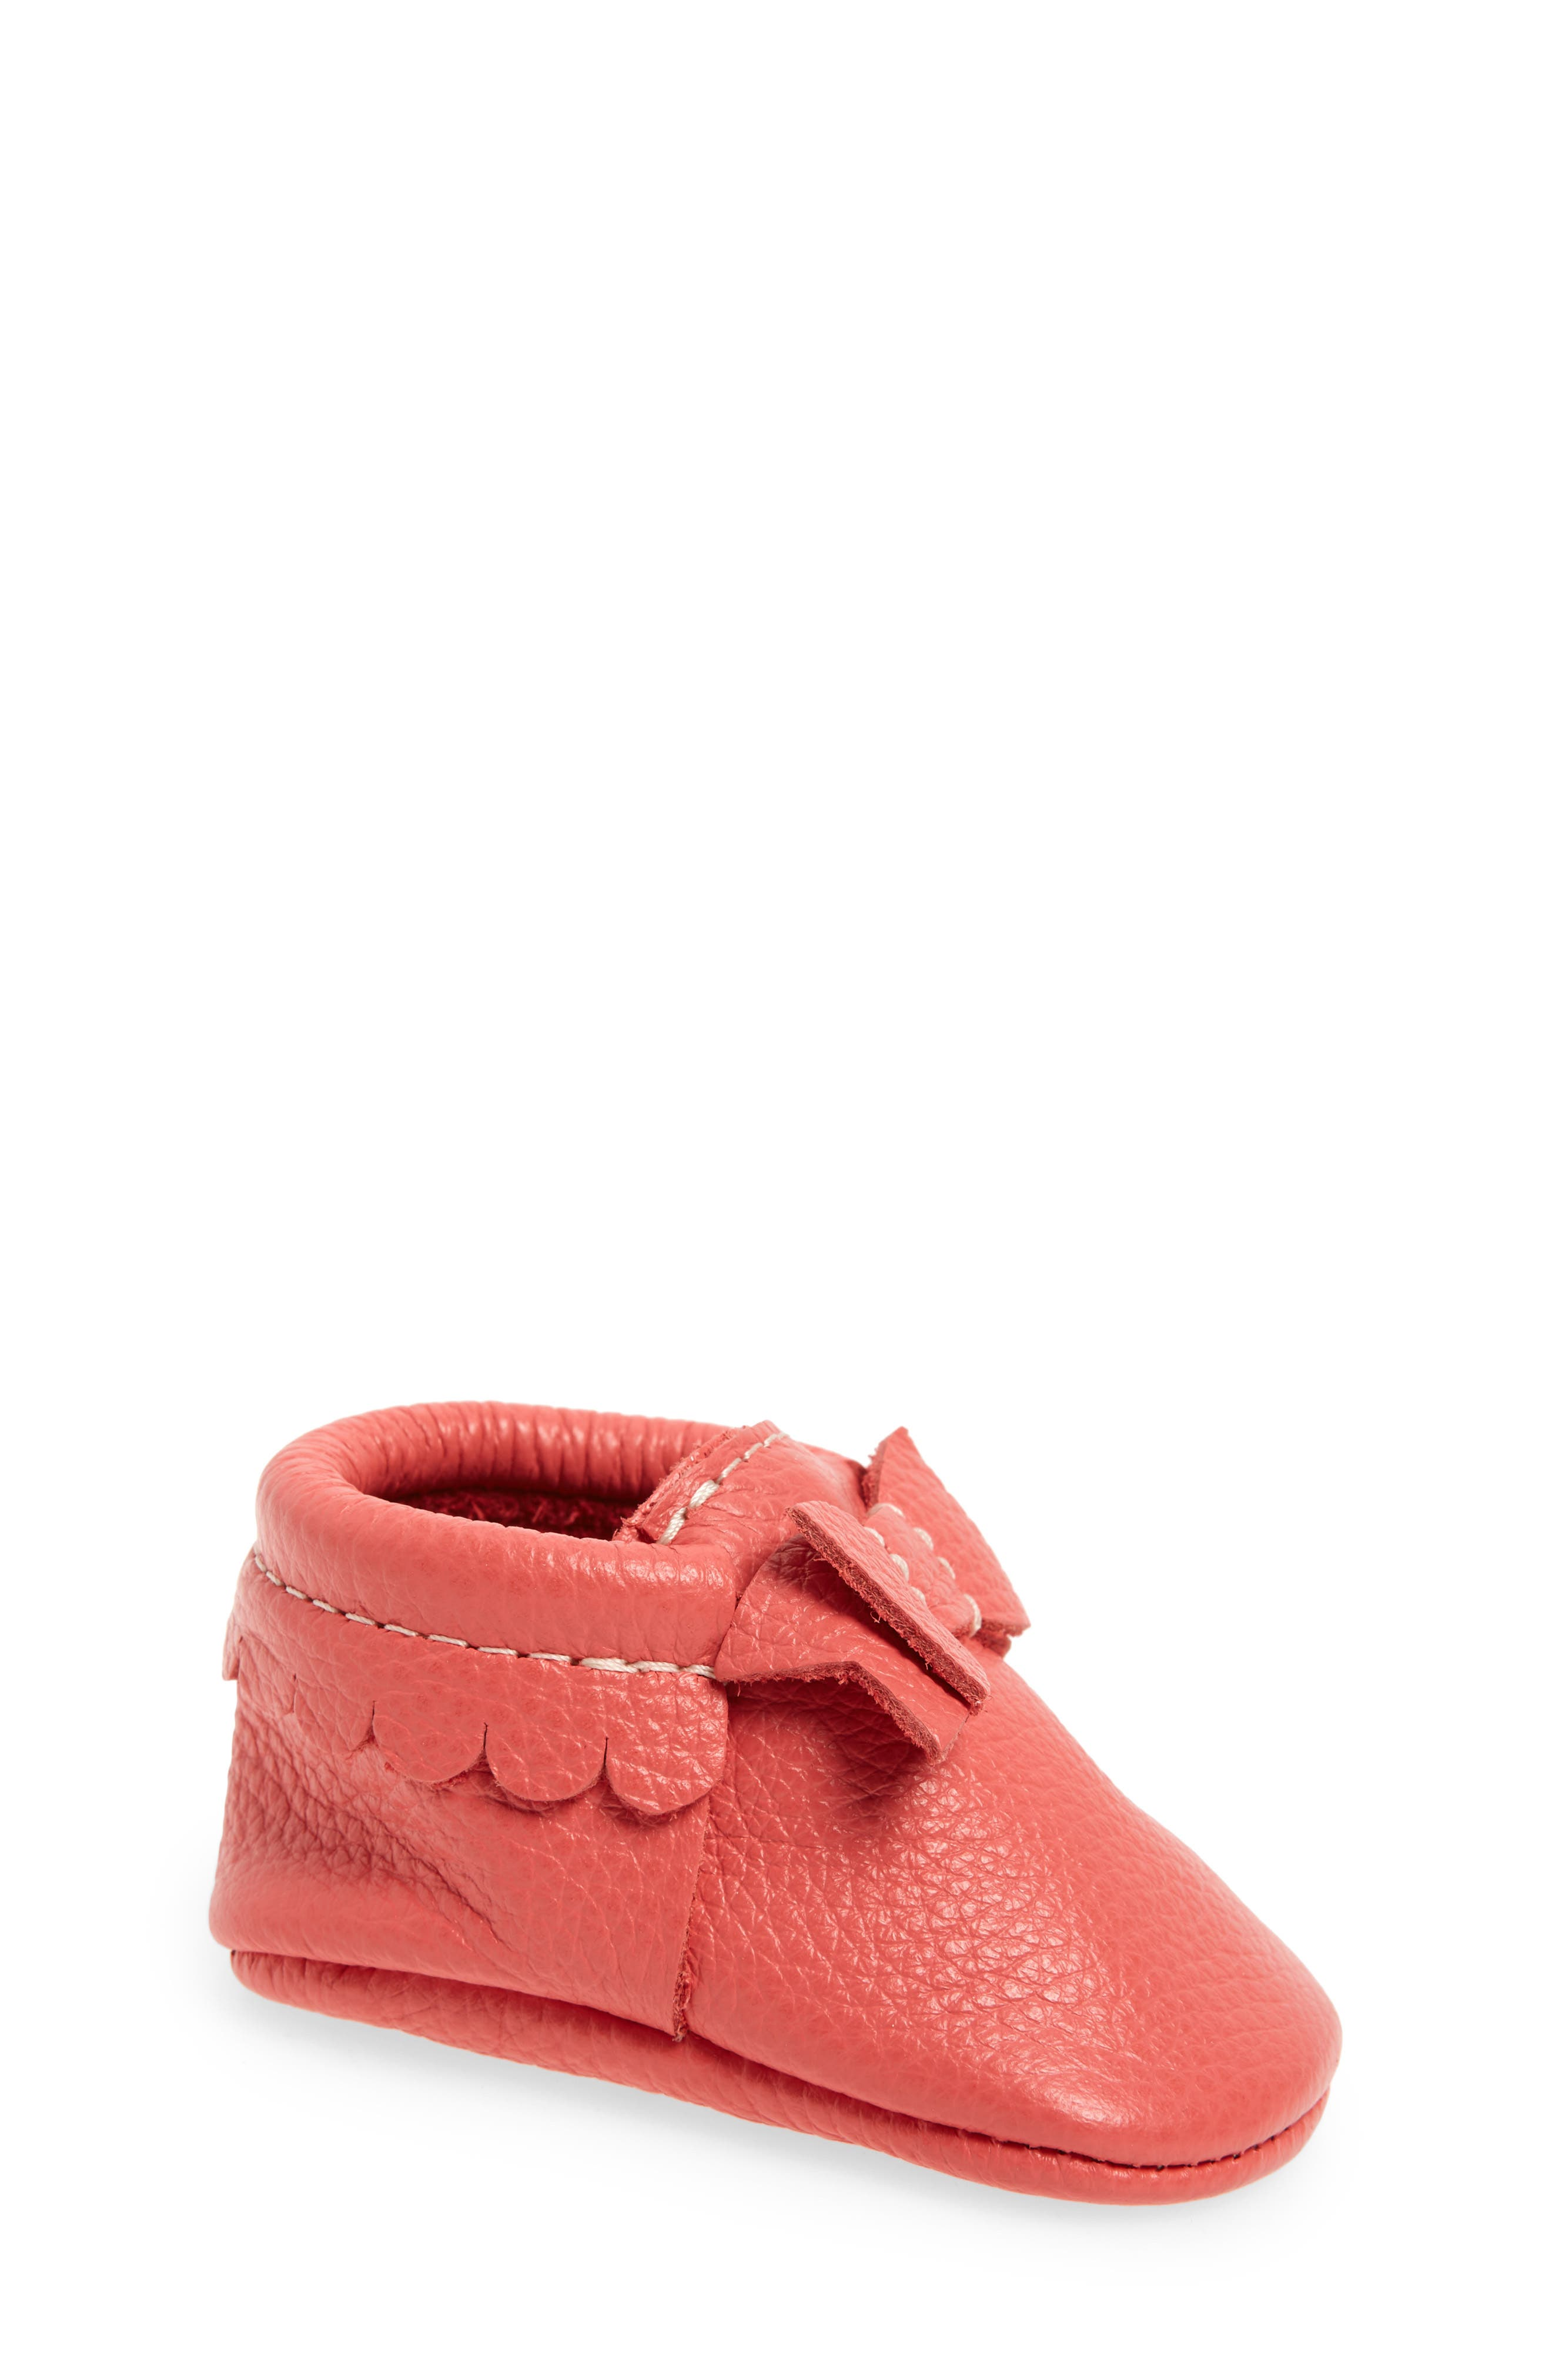 Metallic Bow Moccasin,                             Main thumbnail 1, color,                             PINK LEATHER